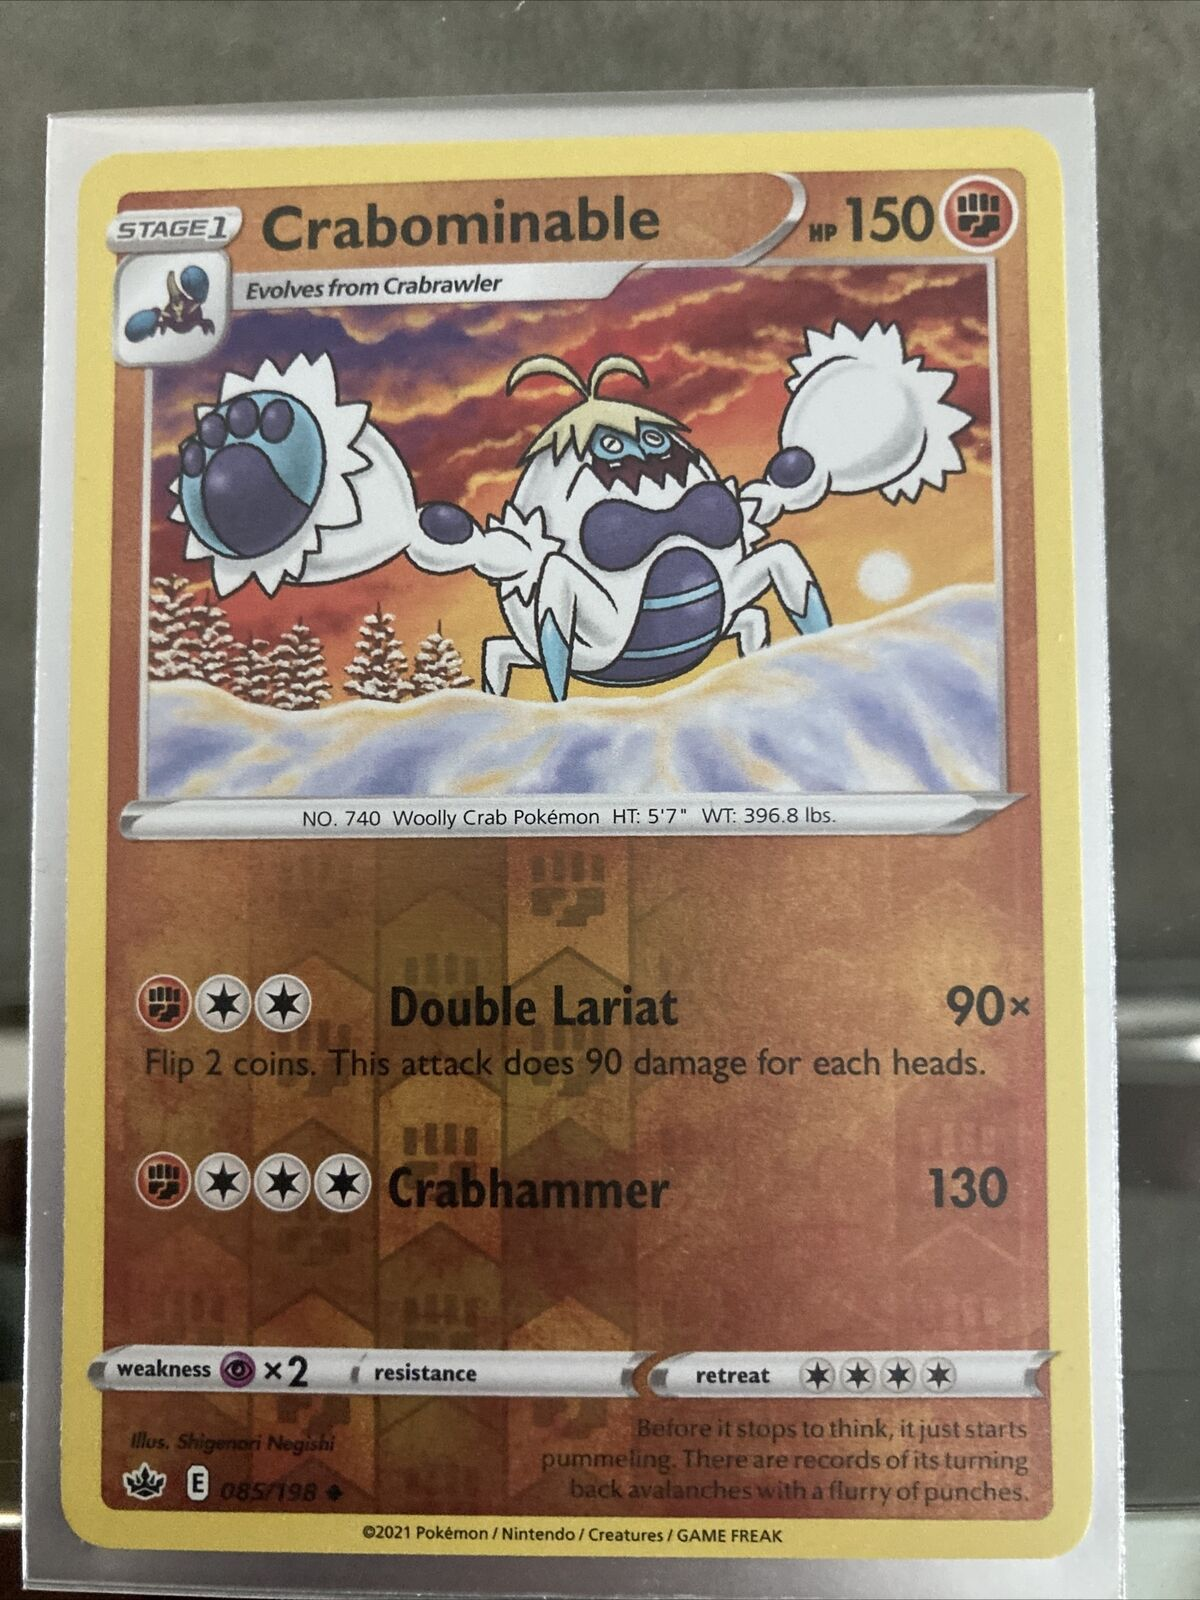 2021 Pokemon TCG Chilling Reign Crabominable - 085/198 - Uncommon NM